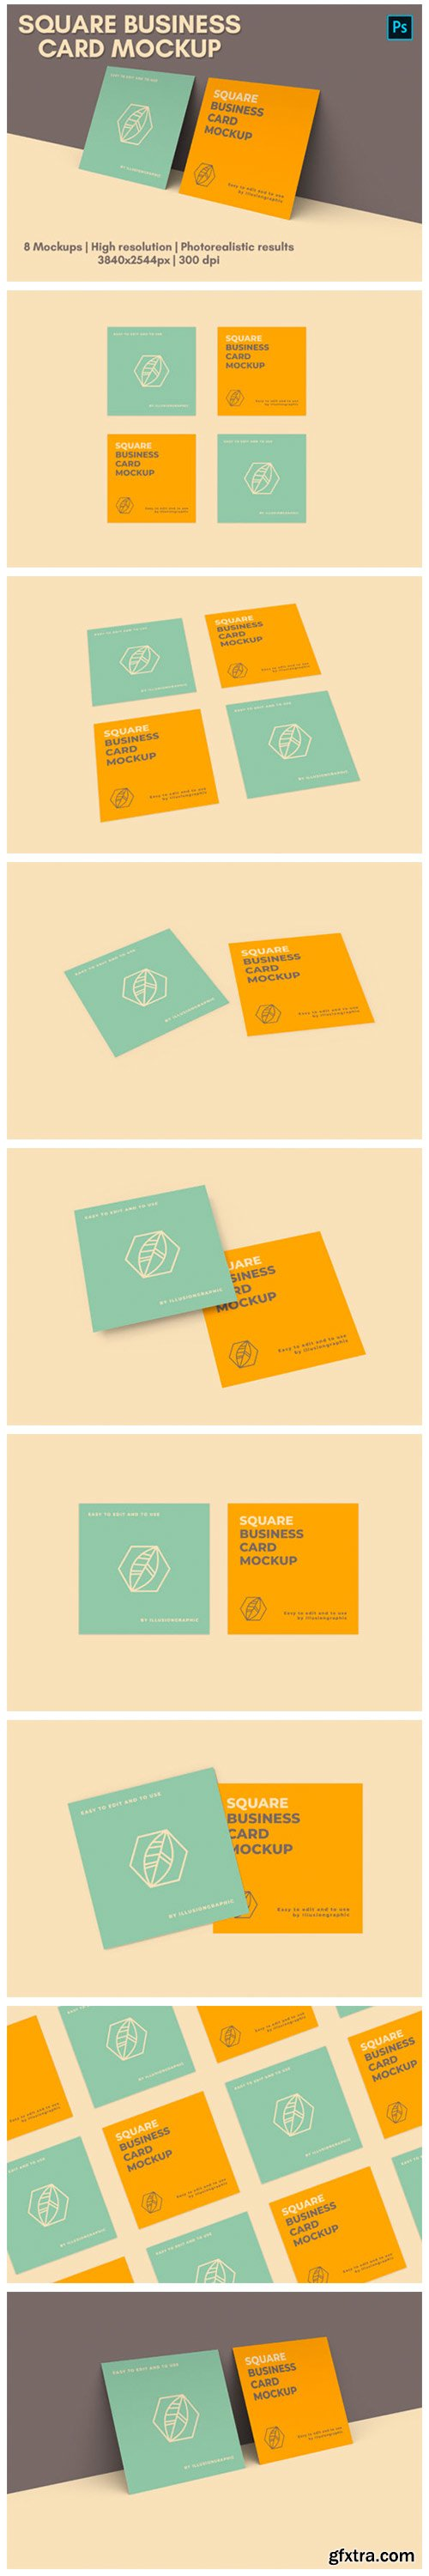 Square Business Card Mock-up - 8 Views 3697292